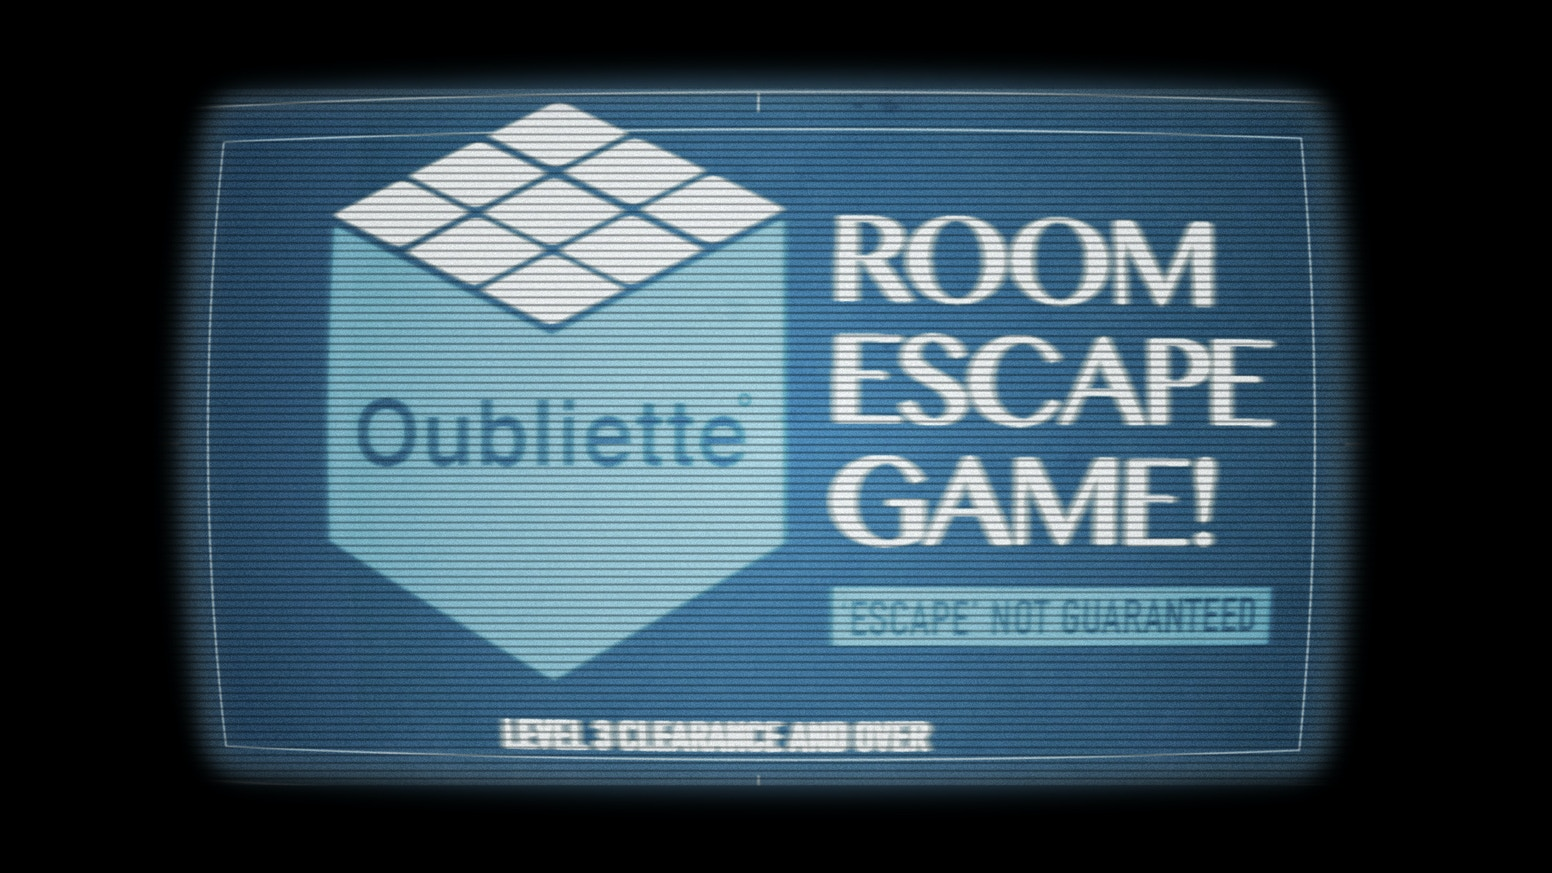 Oubliette Escape Rooms and Adventure Society by Mink Ette